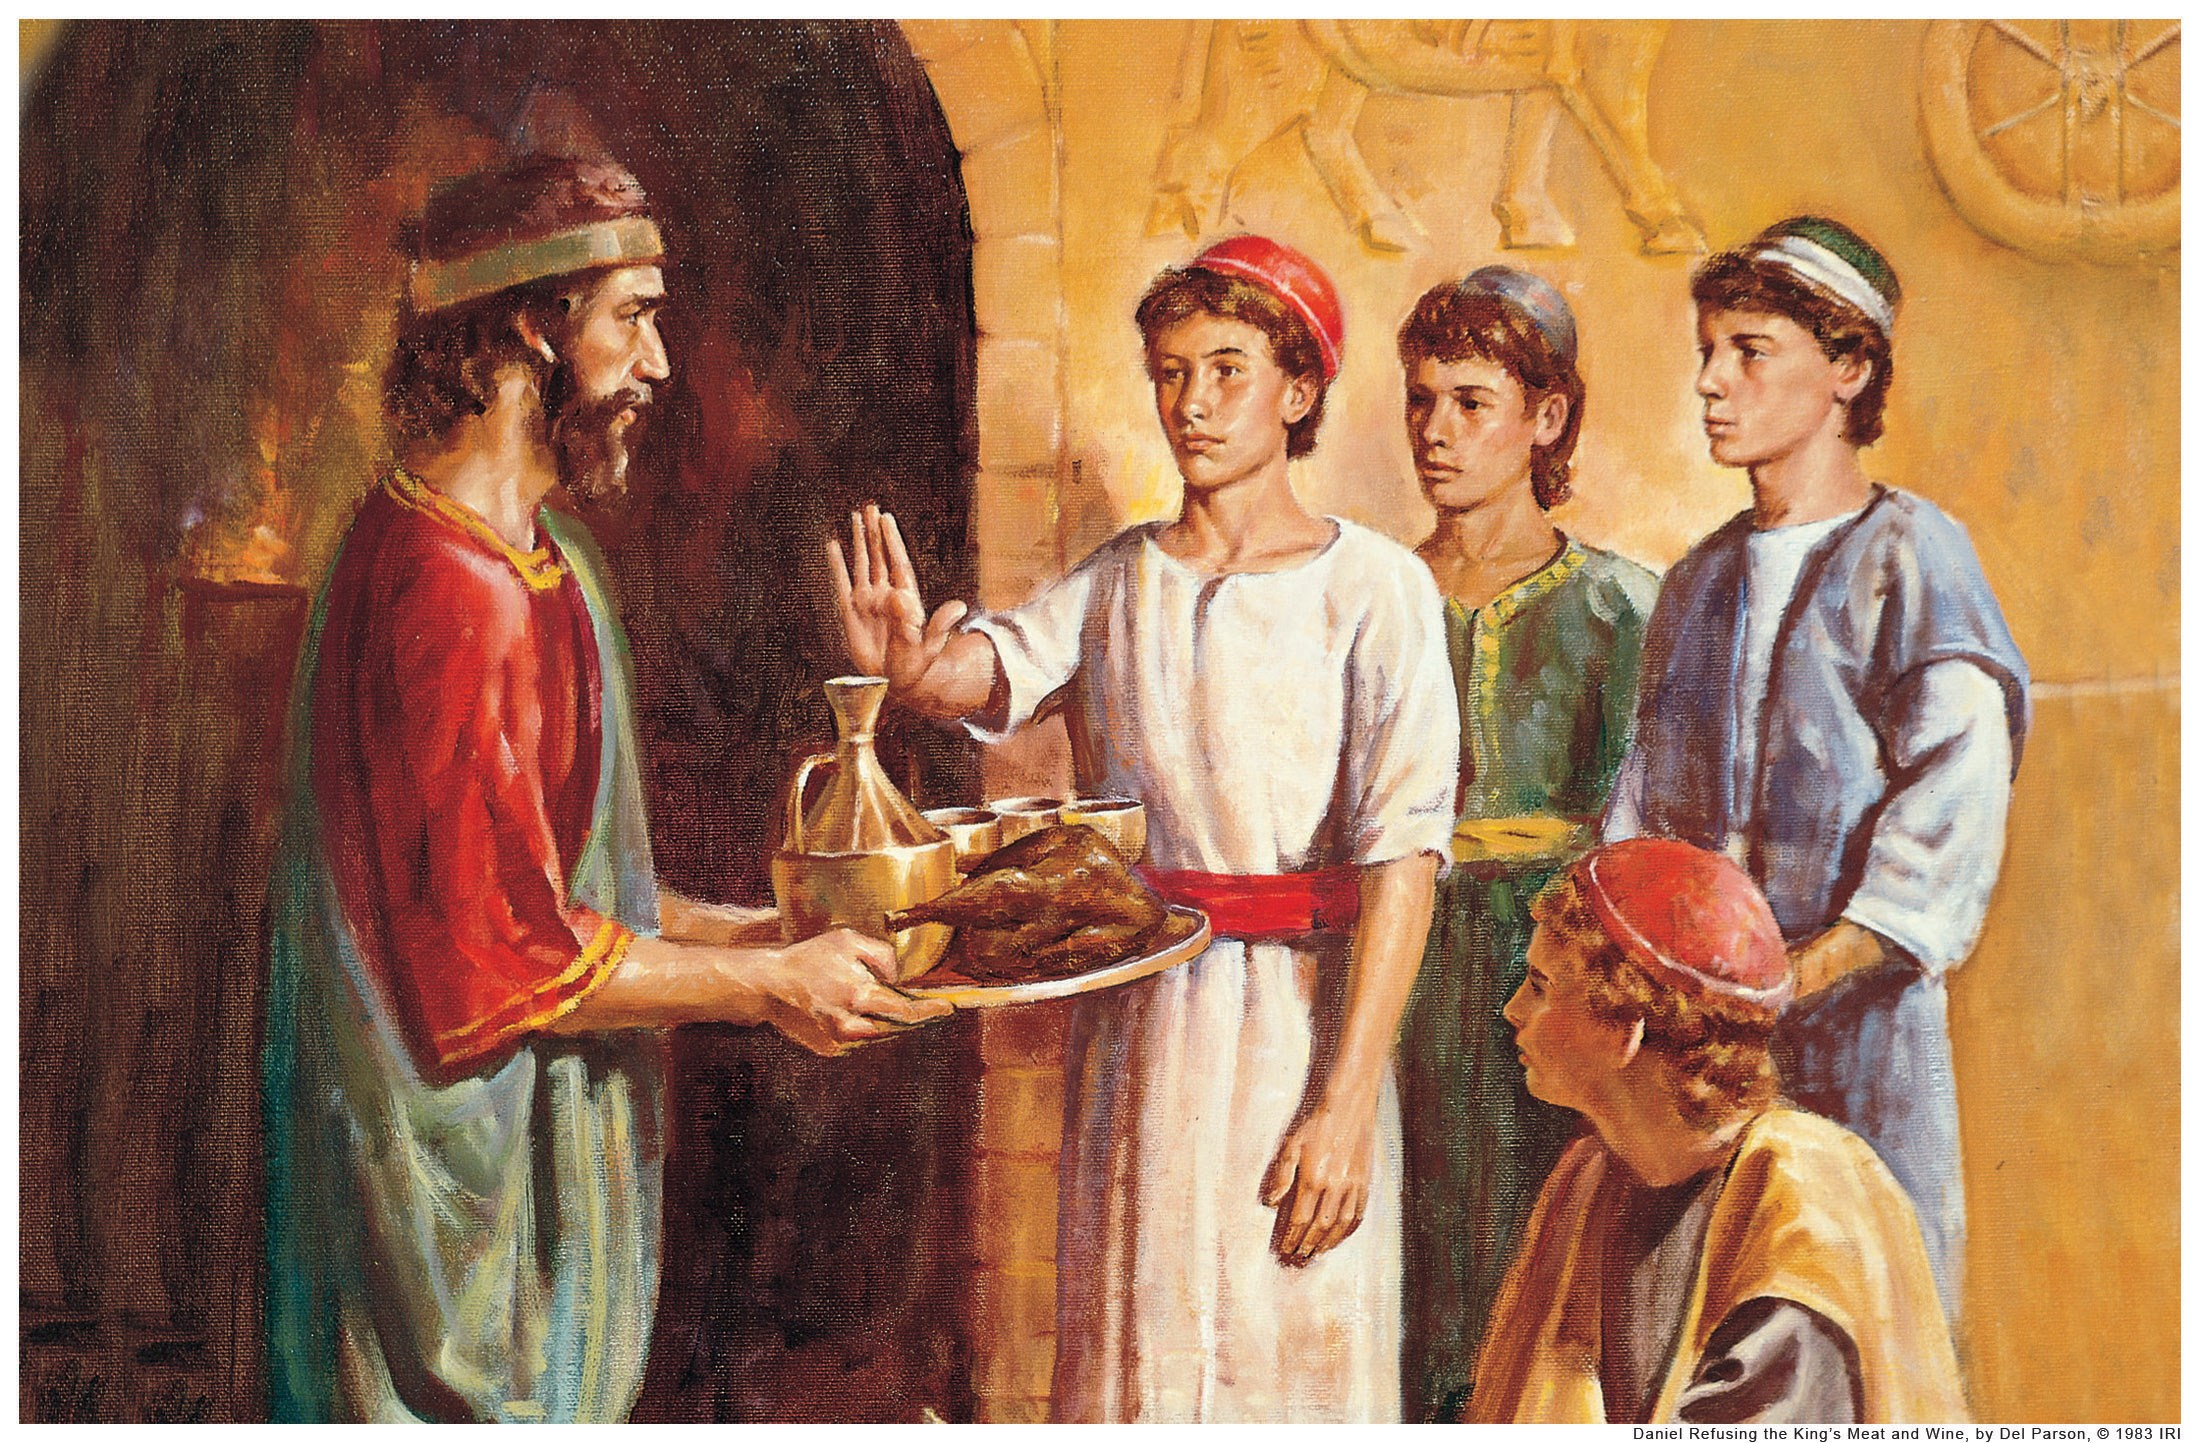 The Book of Daniel Pt 2